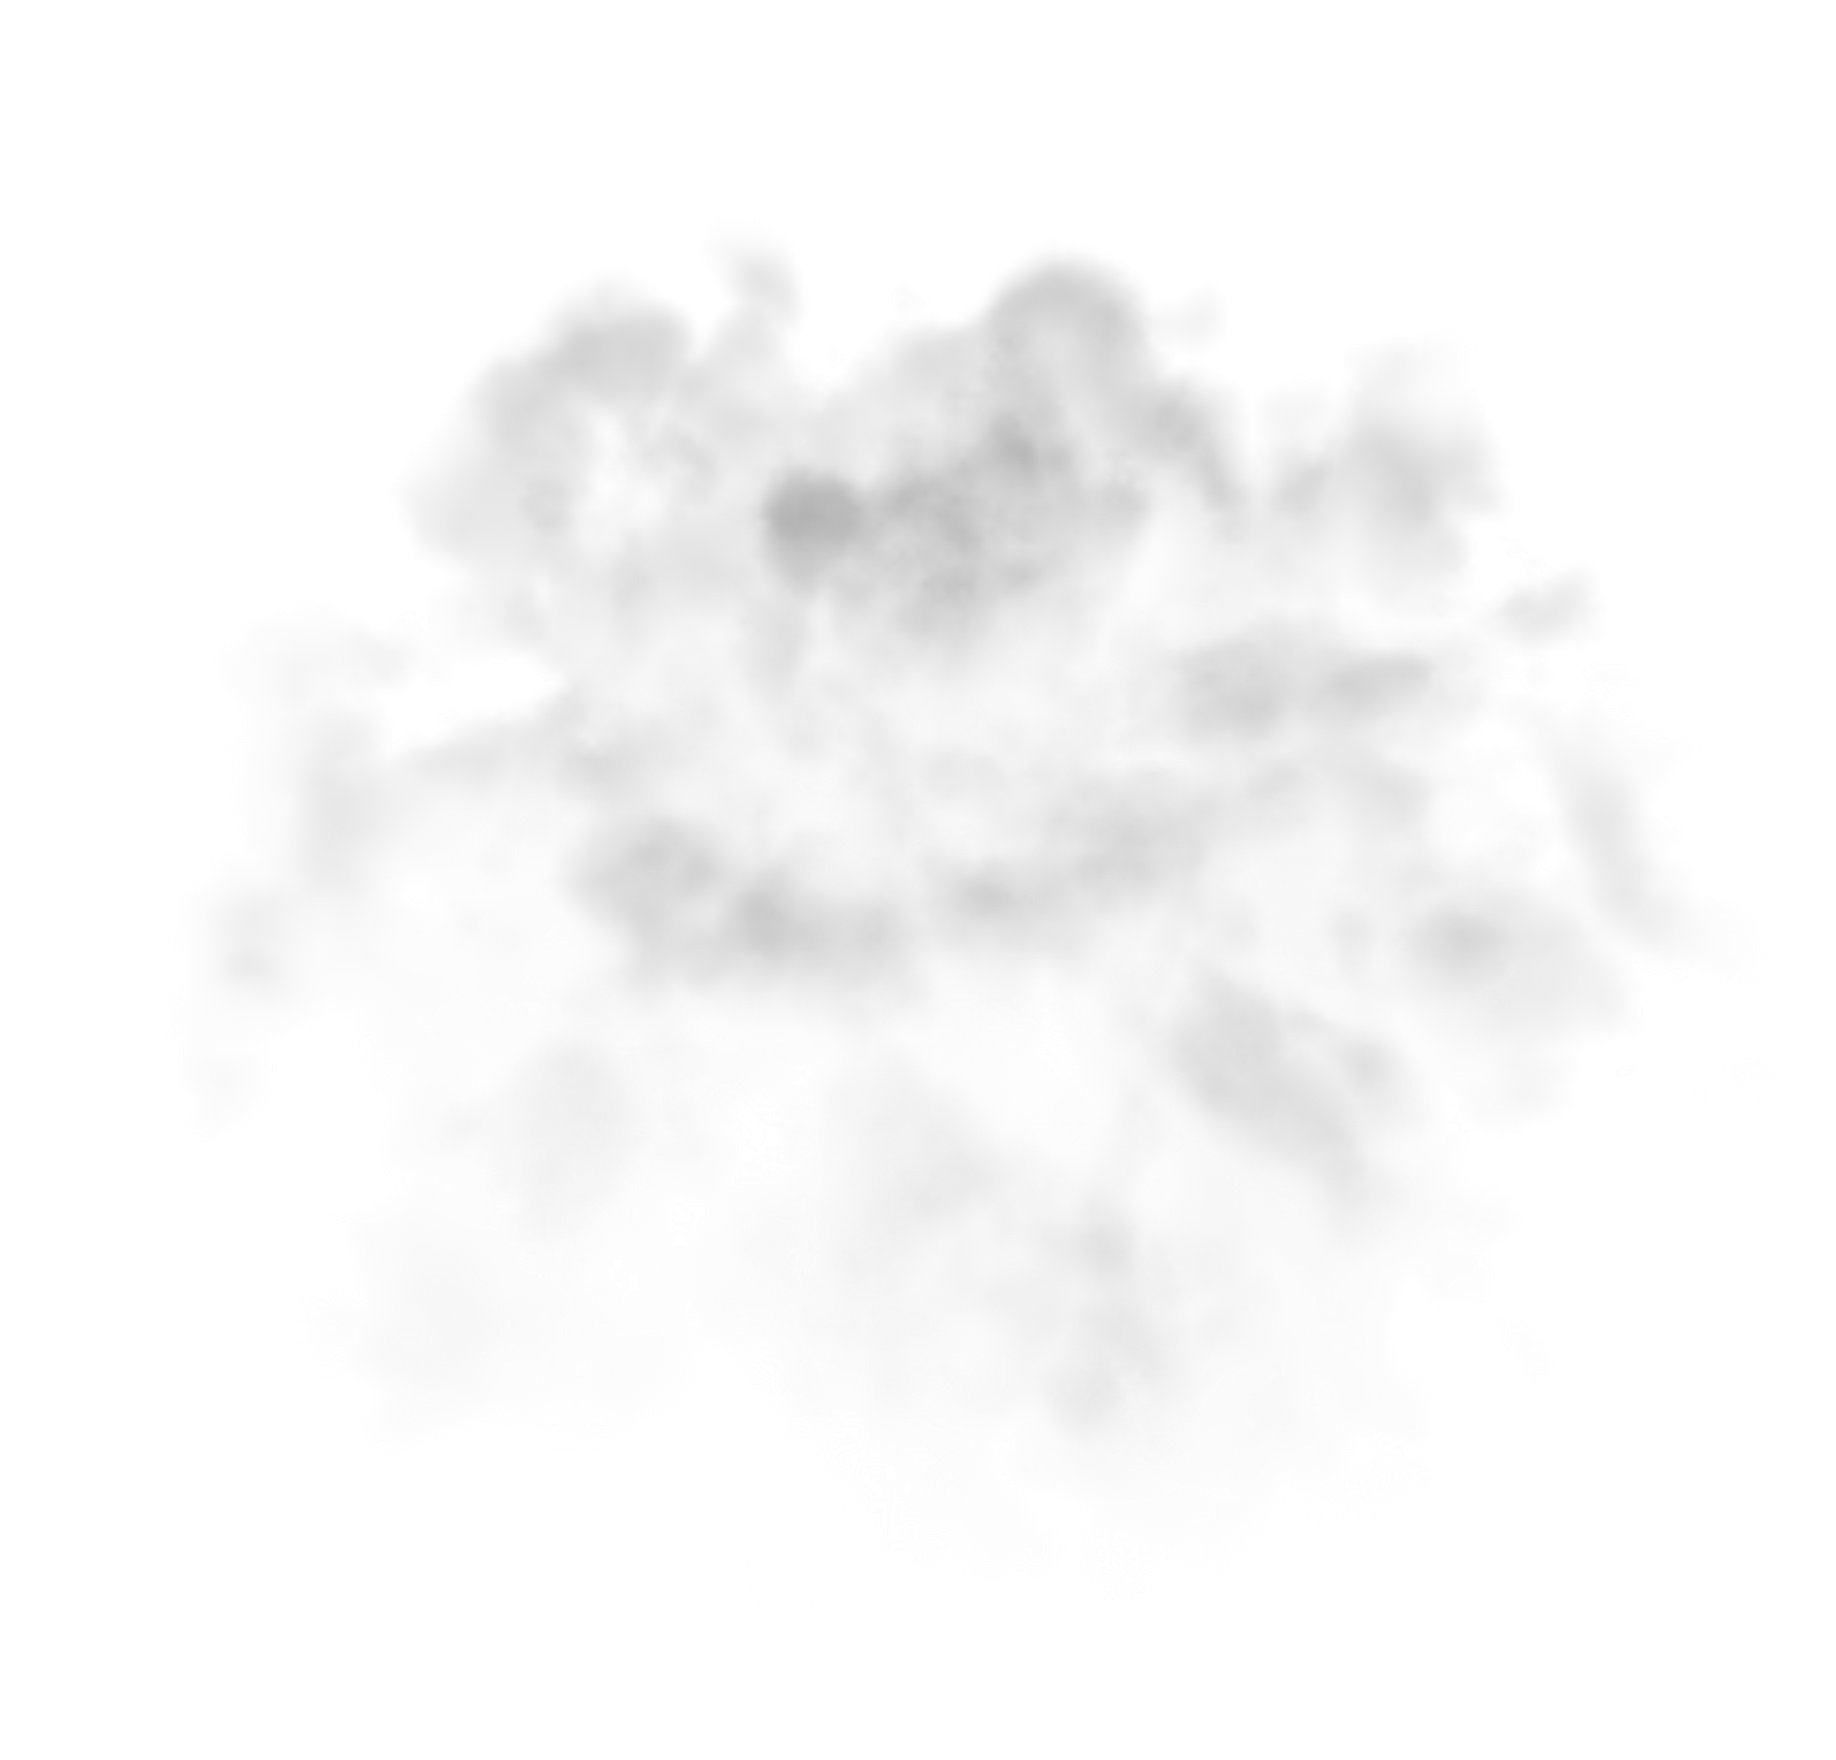 Png smoke cloud. Hd transparent images pluspng